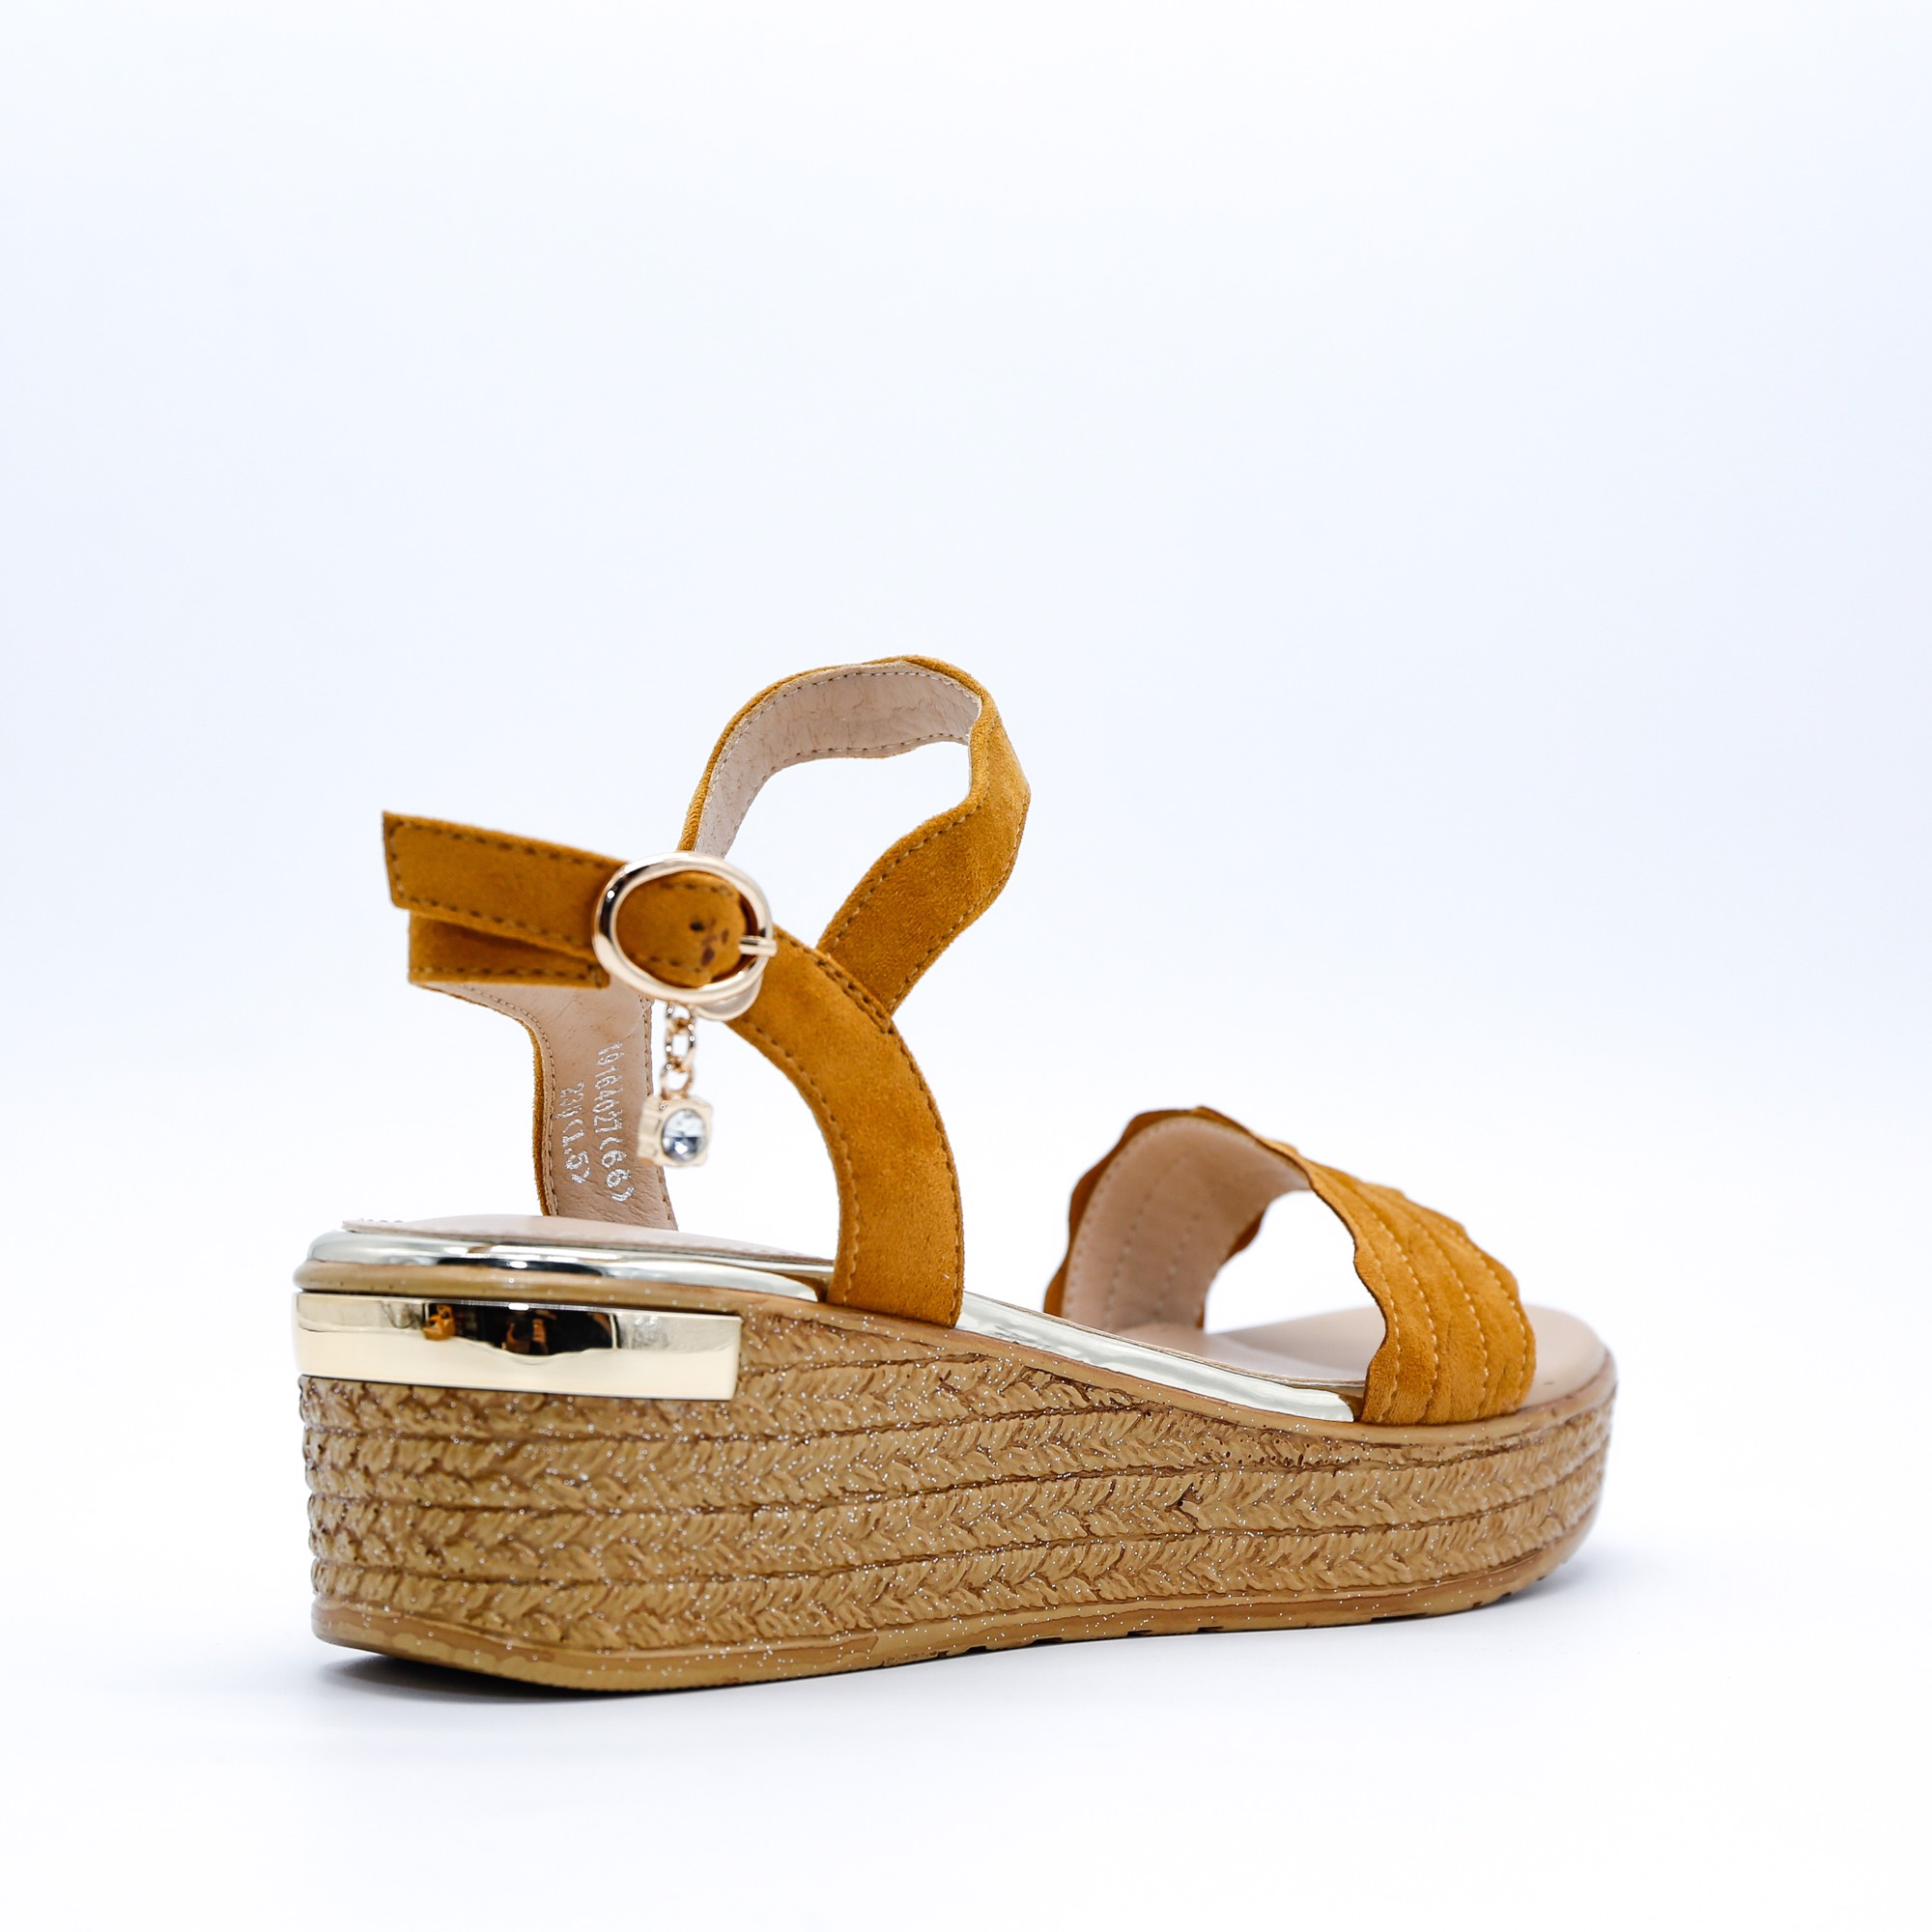 Sandals nữ Exull Mode 1916402726